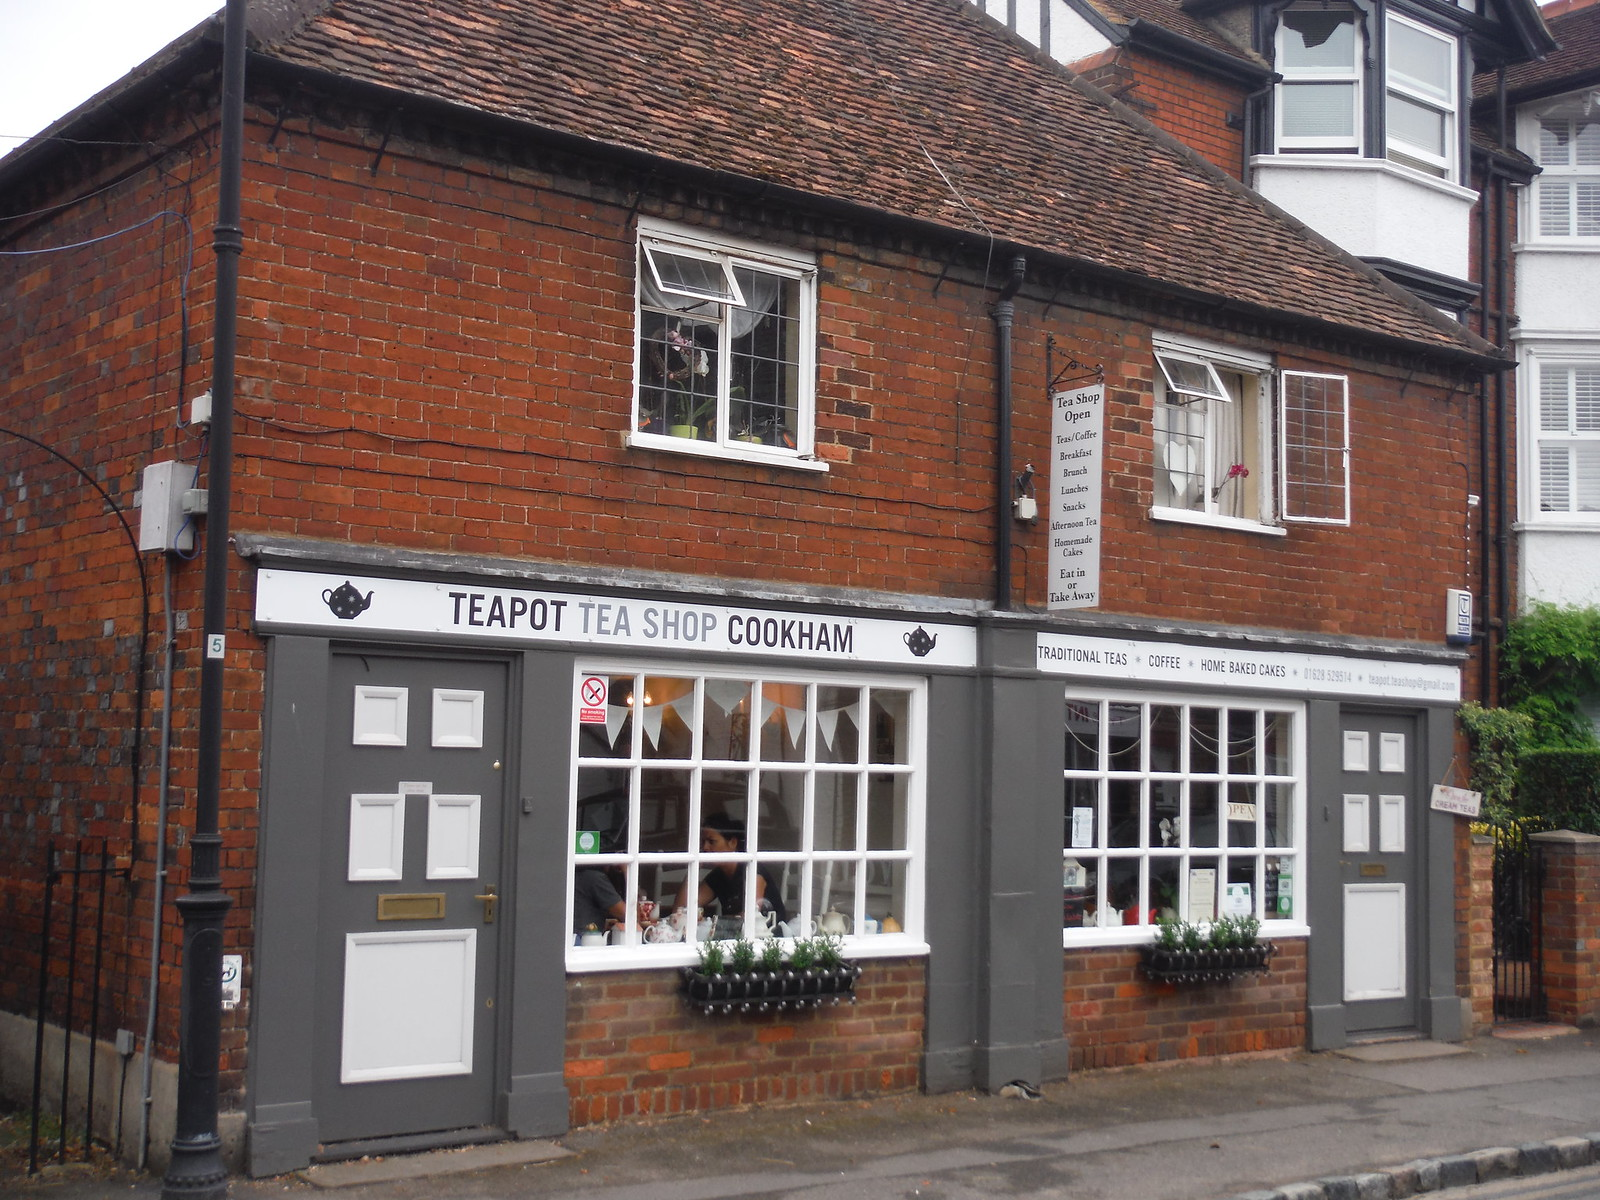 Teashop in Cookham SWC Walk 189 Beeches Way: West Drayton to Cookham